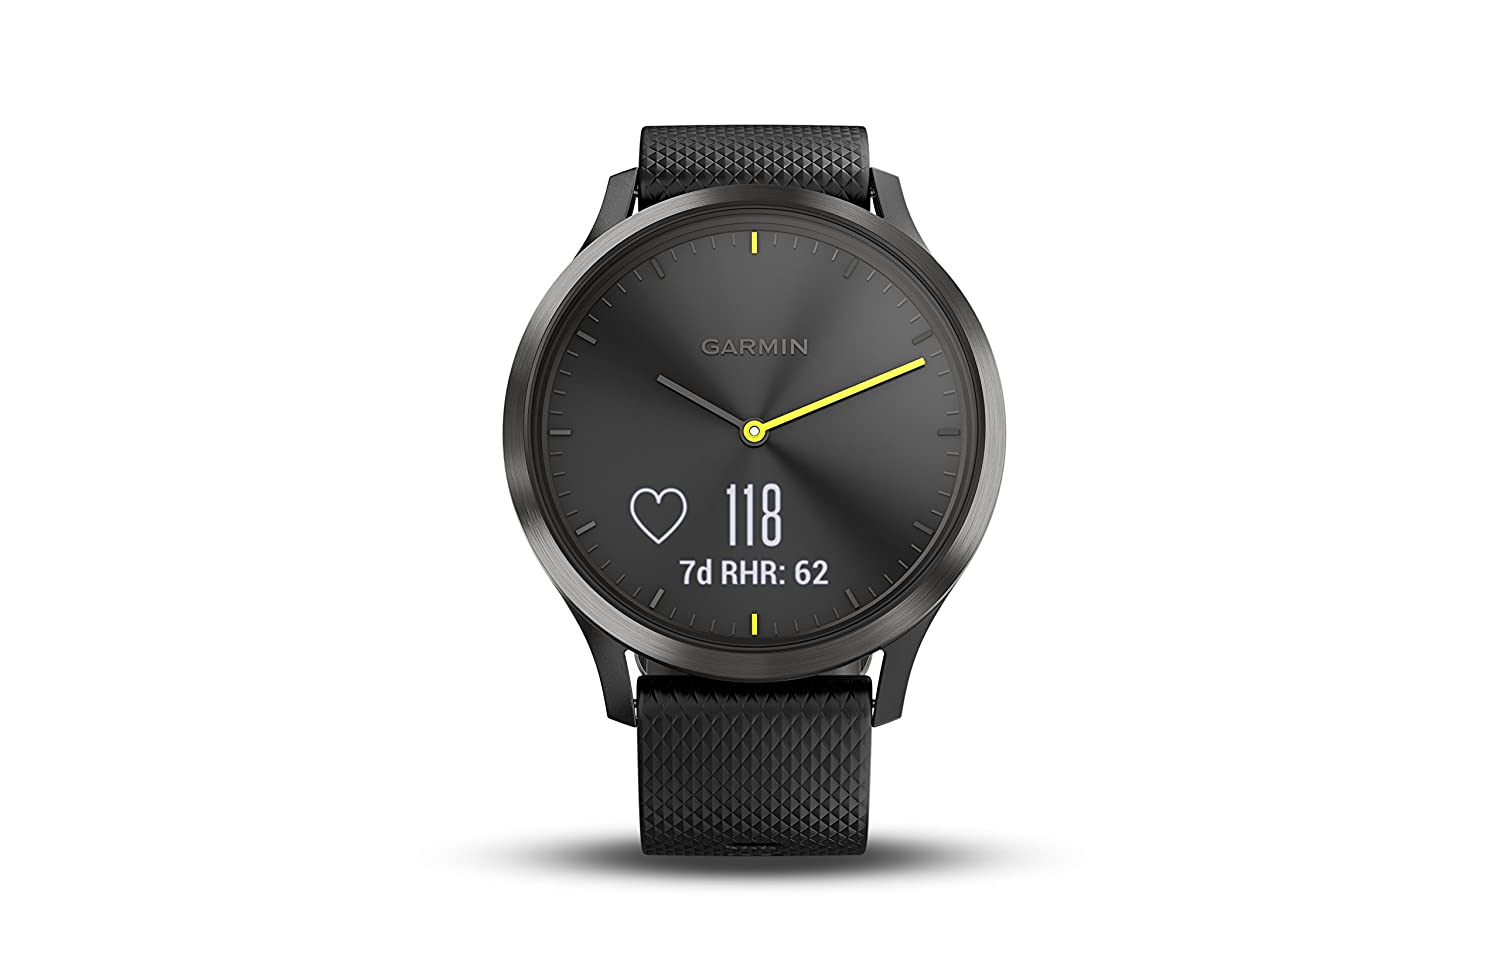 GARMIN VIVO -VIVOMOVE HR SPORT BLACKBLACK LARGE-Vivomove HR Sport Black/Black Large